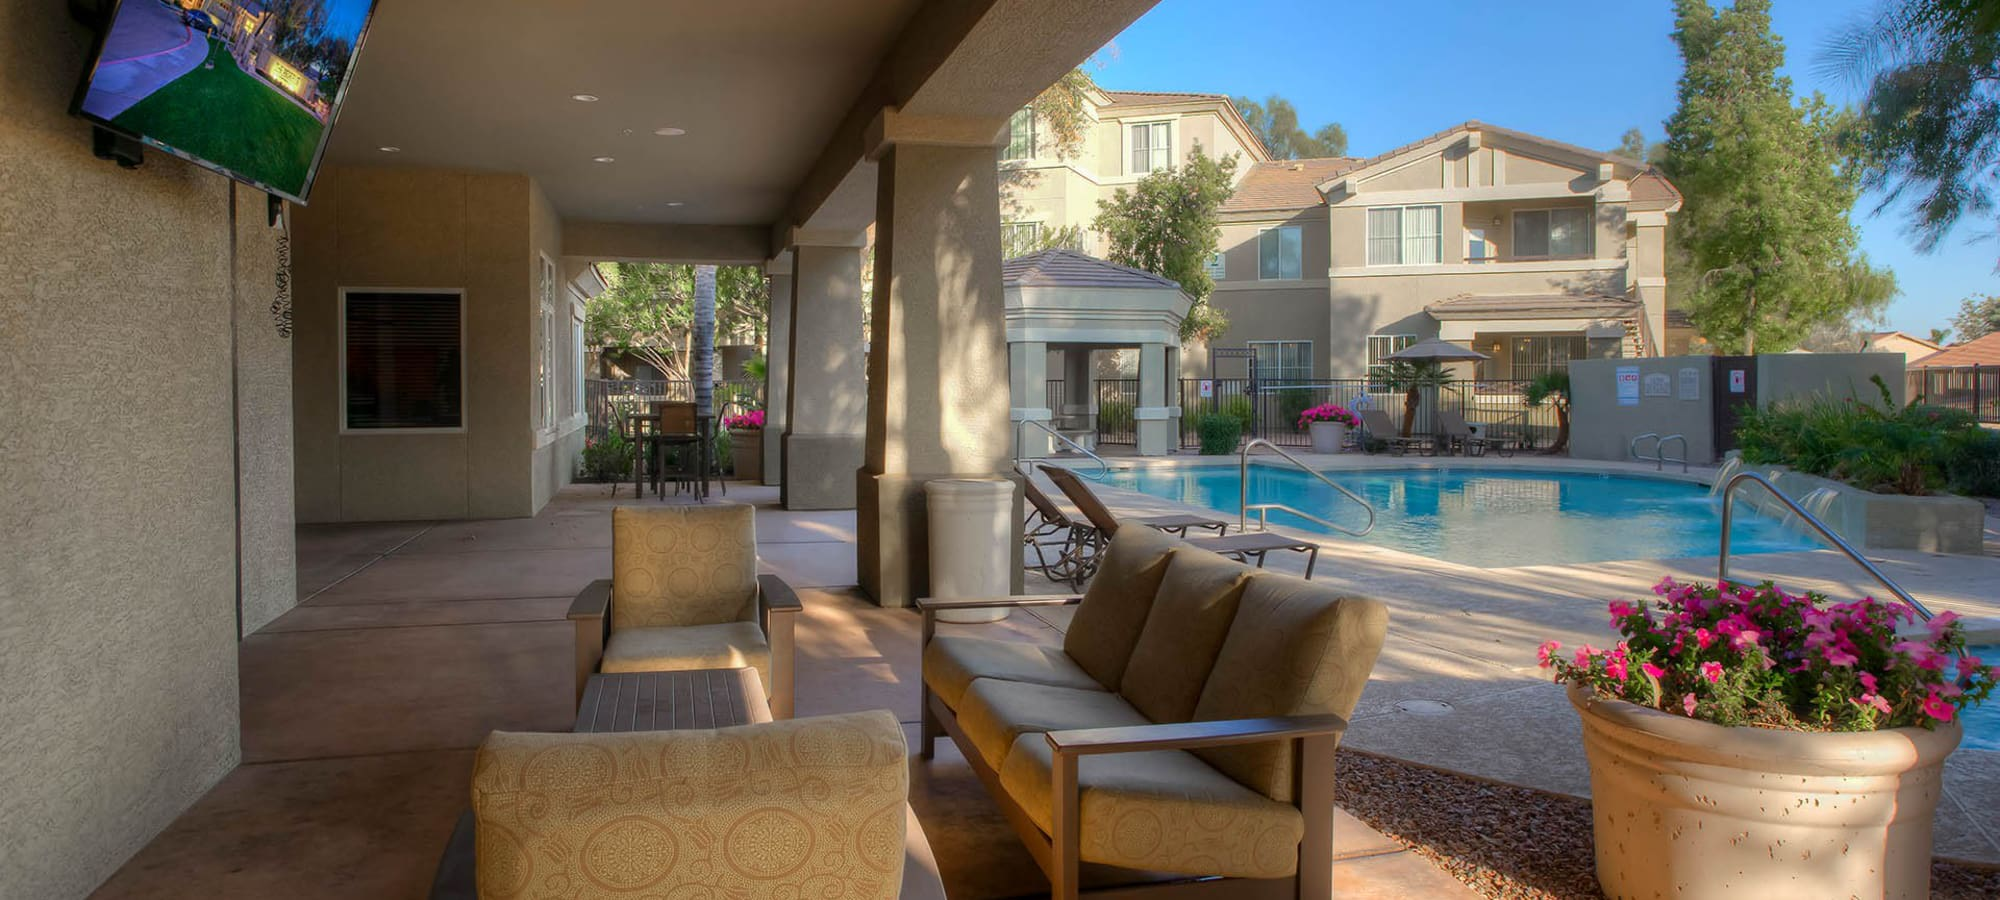 Covered seating area close to the swimming pool at The Reserve at Gilbert Towne Centre in Gilbert, Arizona